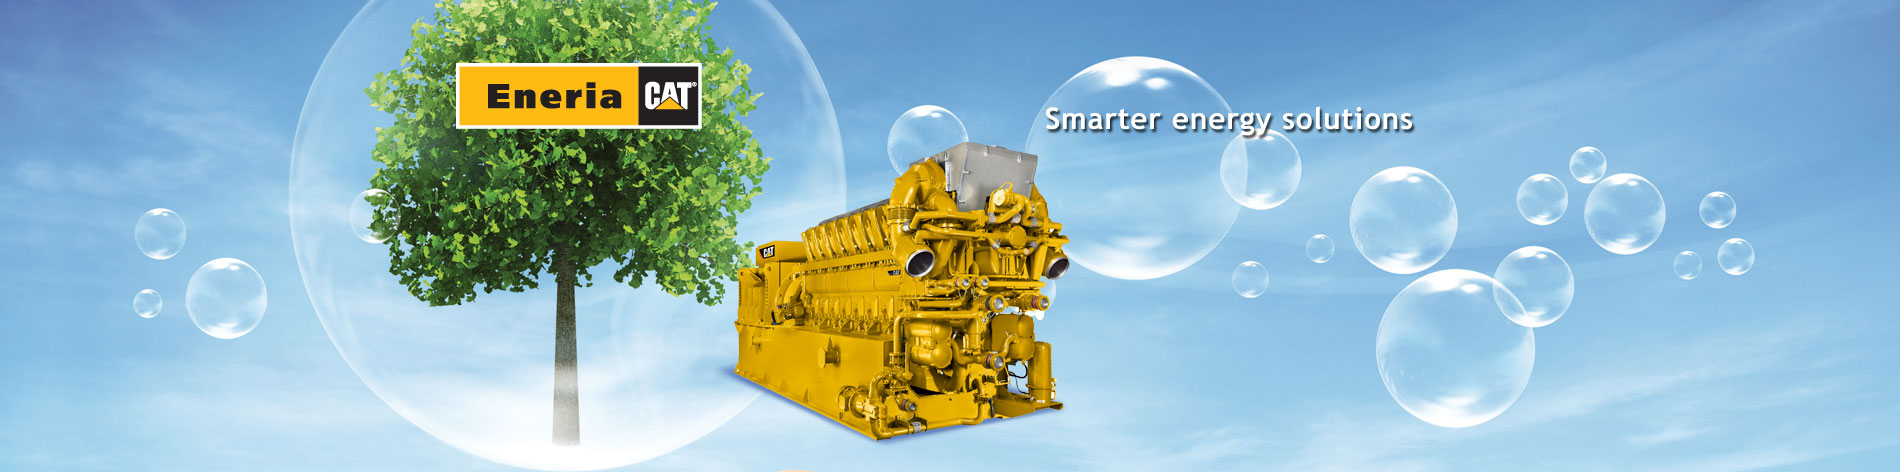 Whether gas or biogas, from 130 kWe to 4,300 kWe we install Caterpillar generator sets that meet your heating, cooling or power needs.